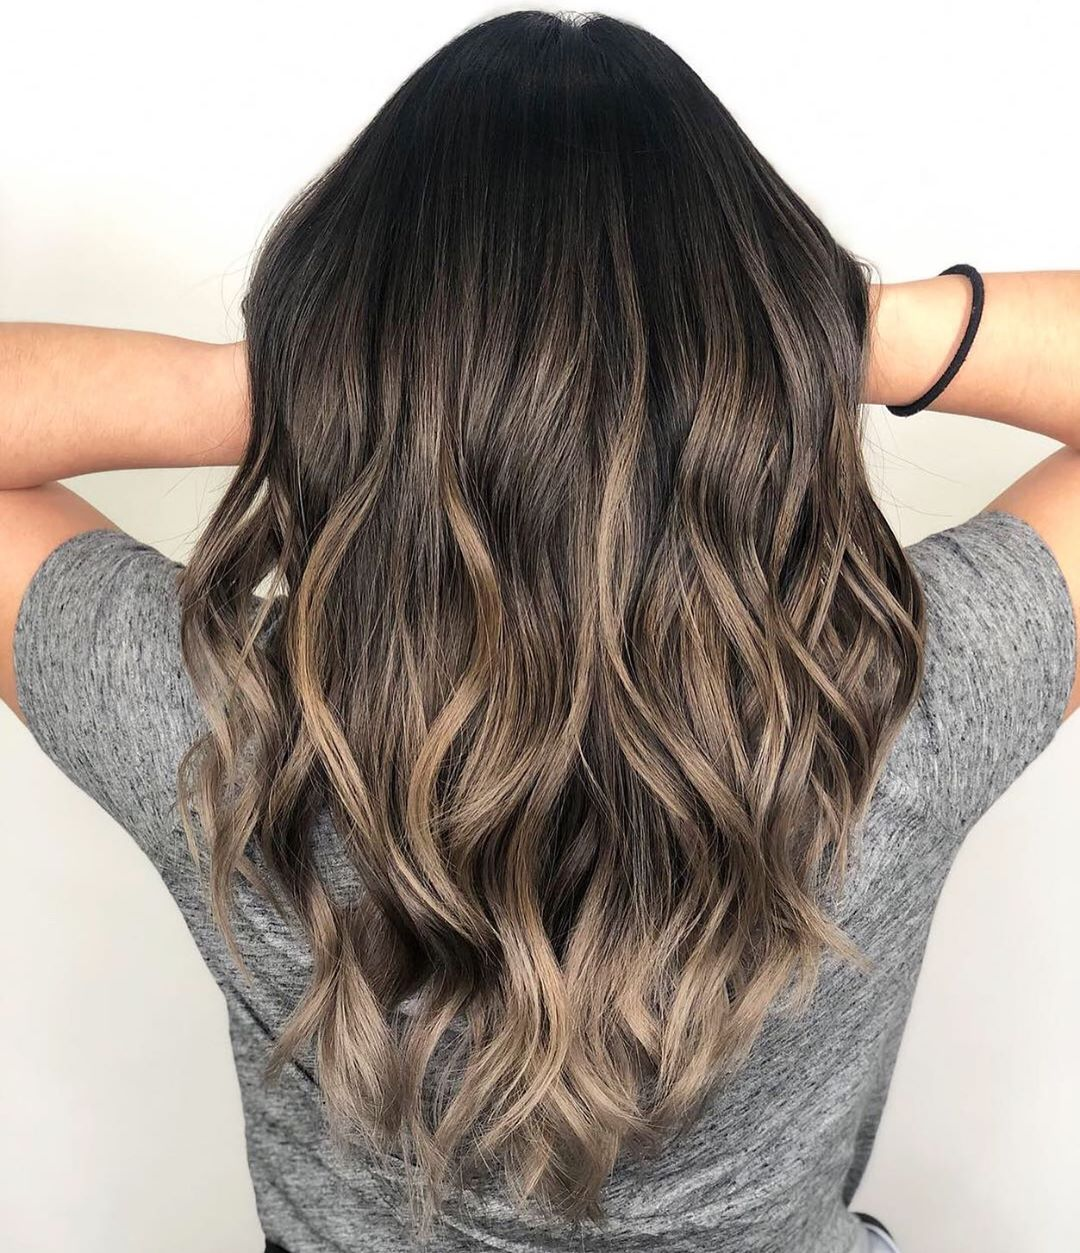 Dark Curly Hair with Ash Blonde Highlights